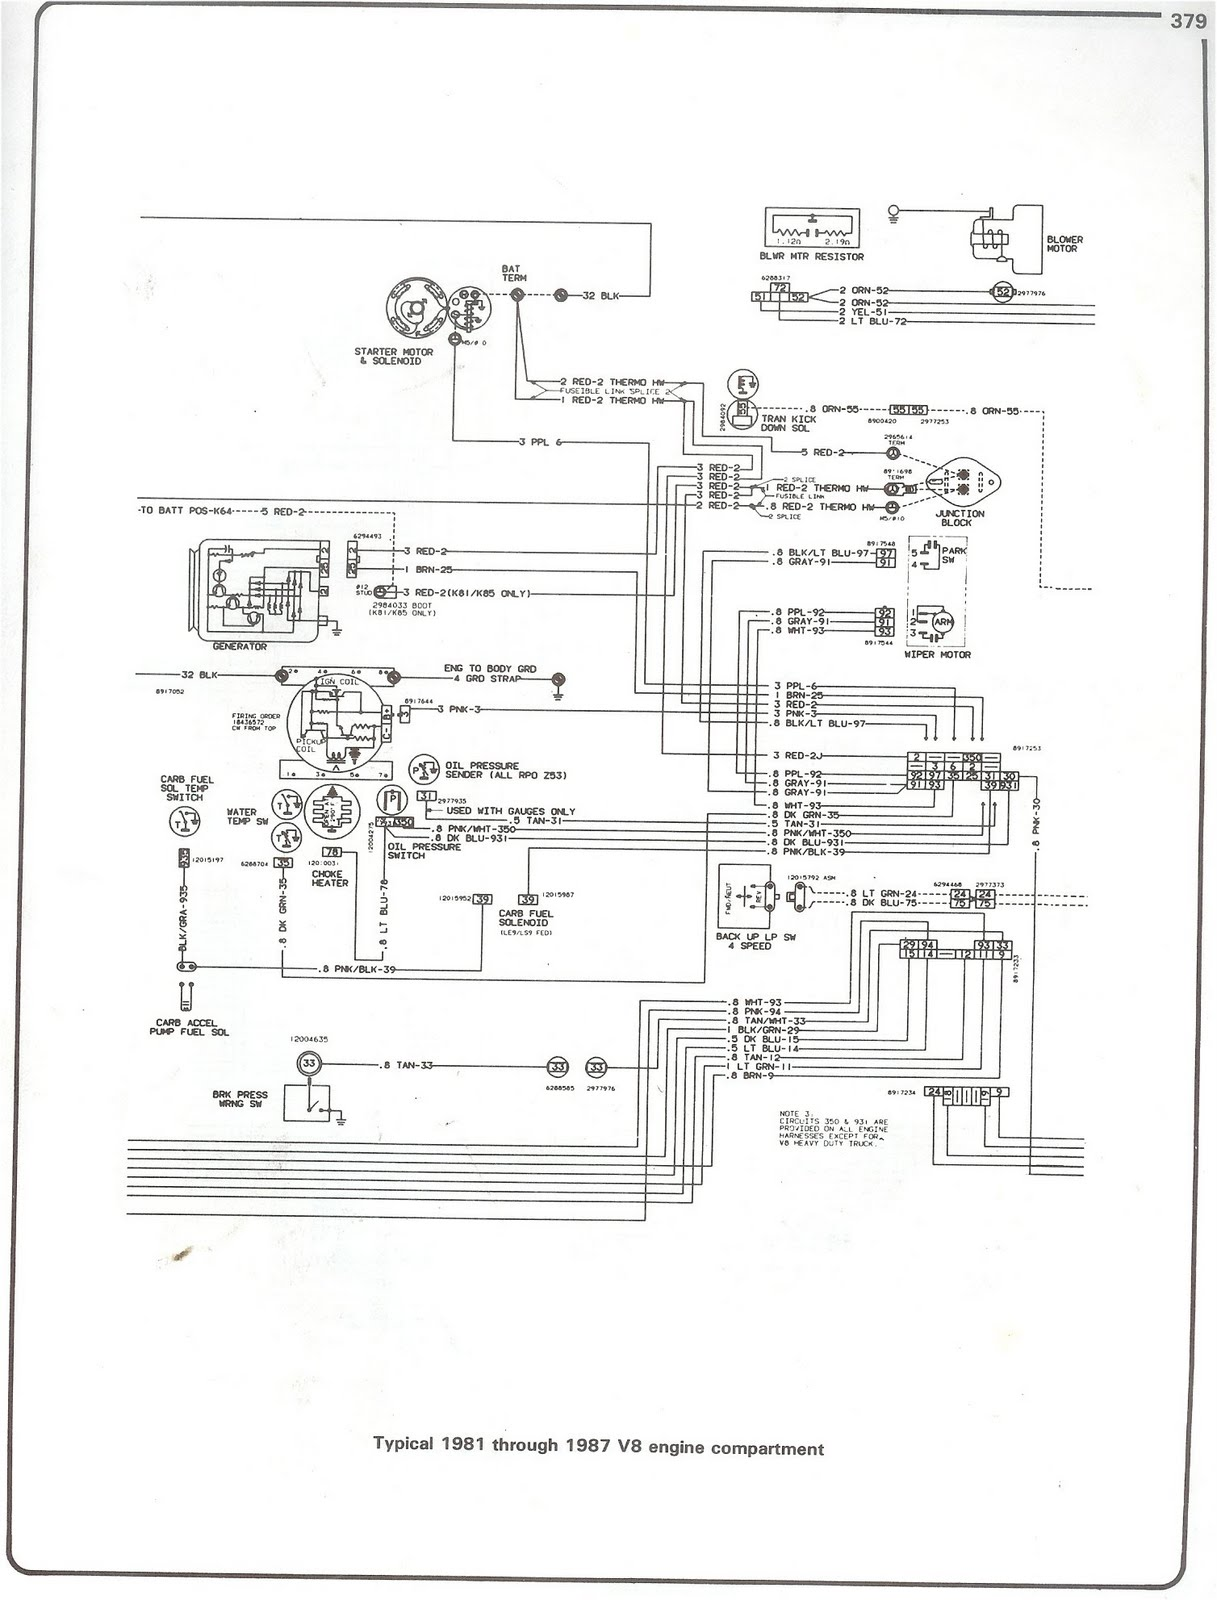 Engine Wiring Diagram For 1987 Chevy Truck on Engine Wiring Diagram